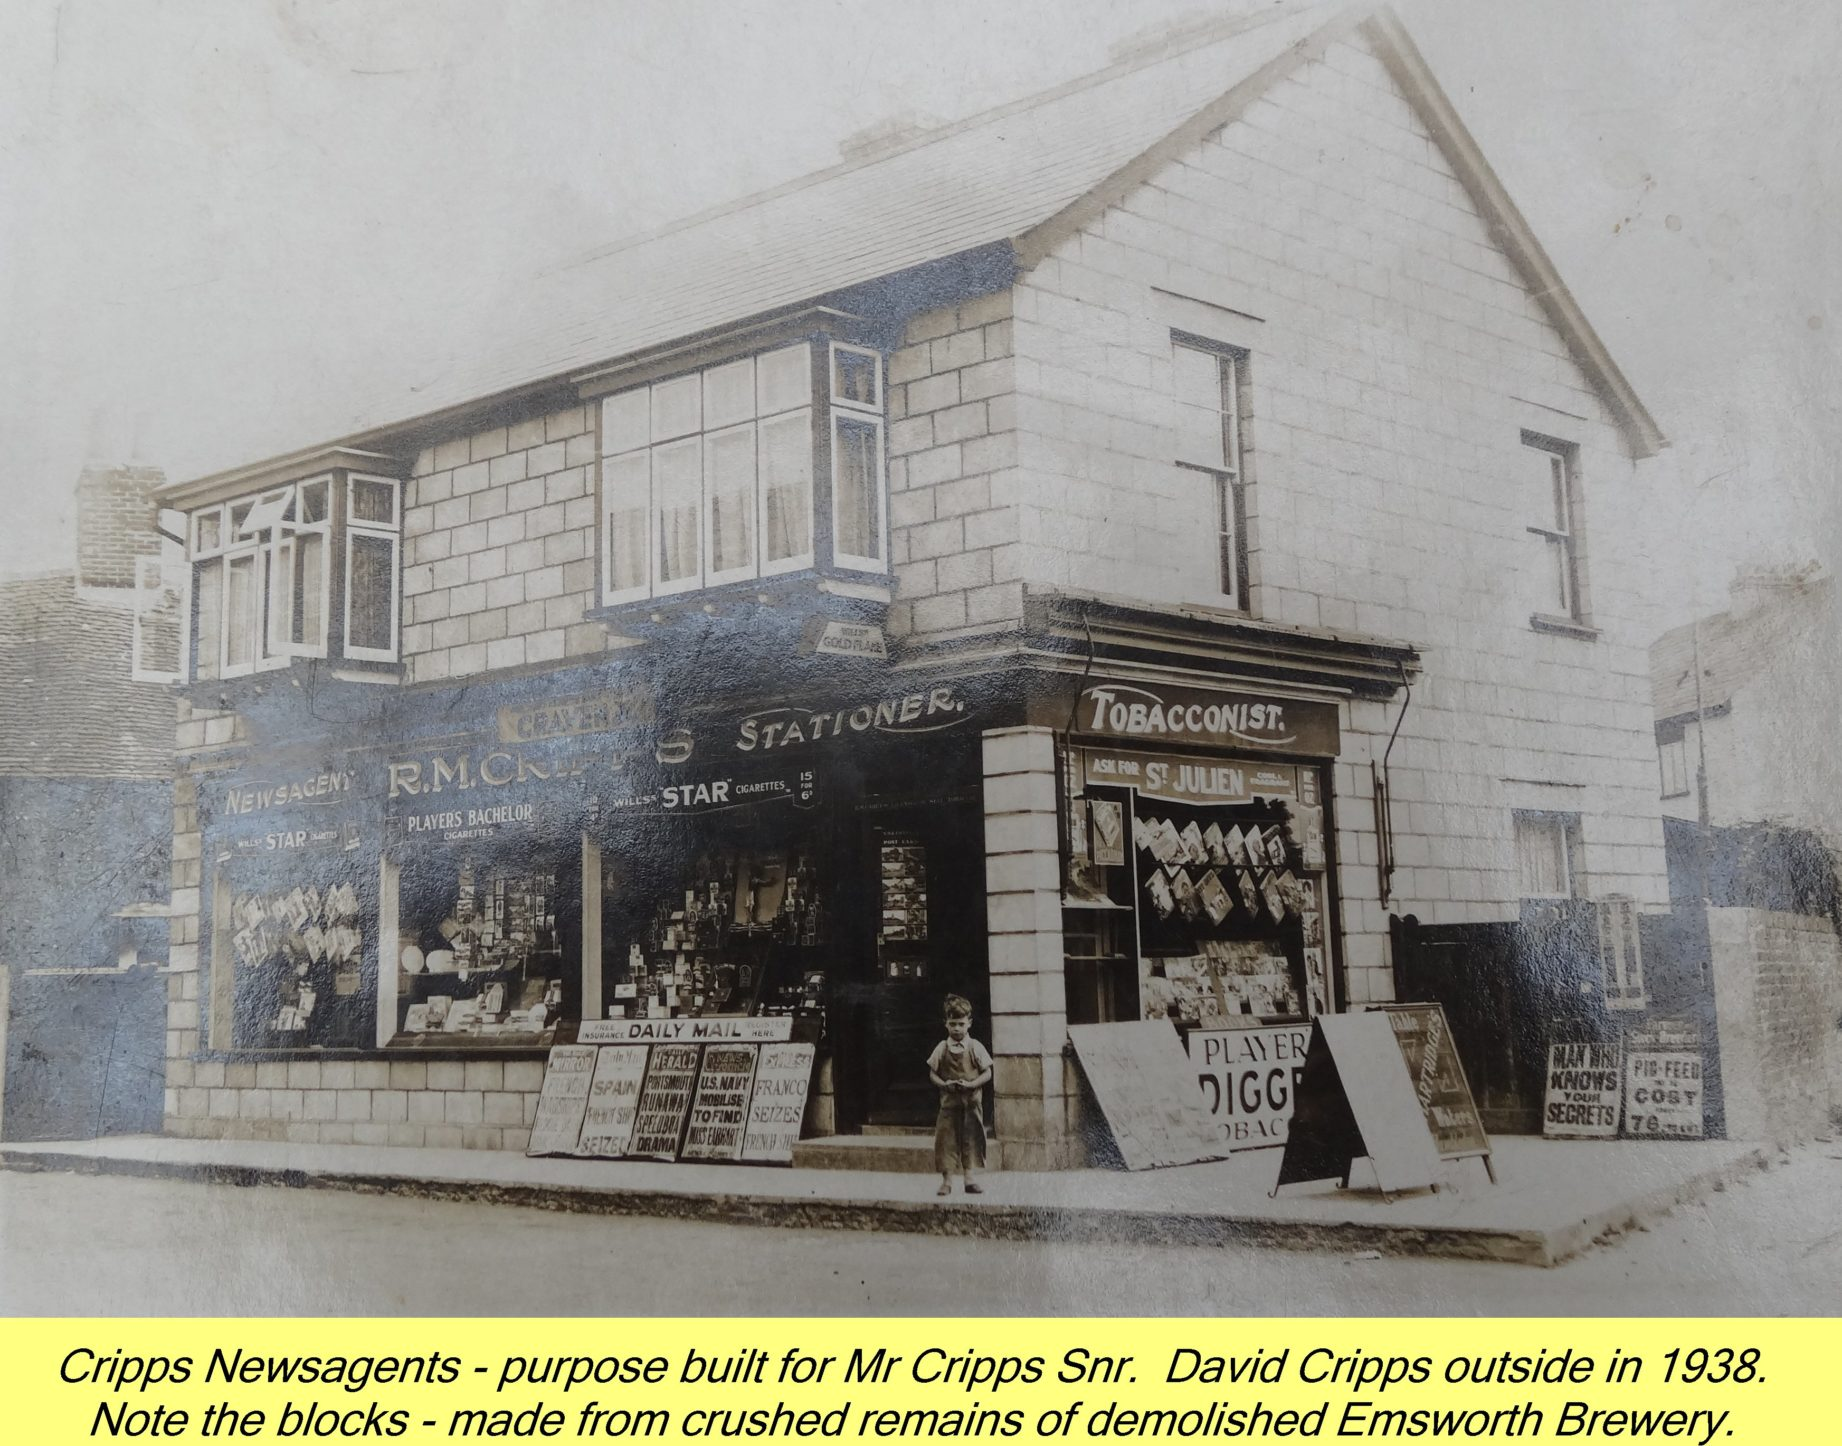 WESTBOURNE HISTORY PHOTO, CRIPPS, NEWSAGENT, NORTH STREET, EMSWORTH BREWERY